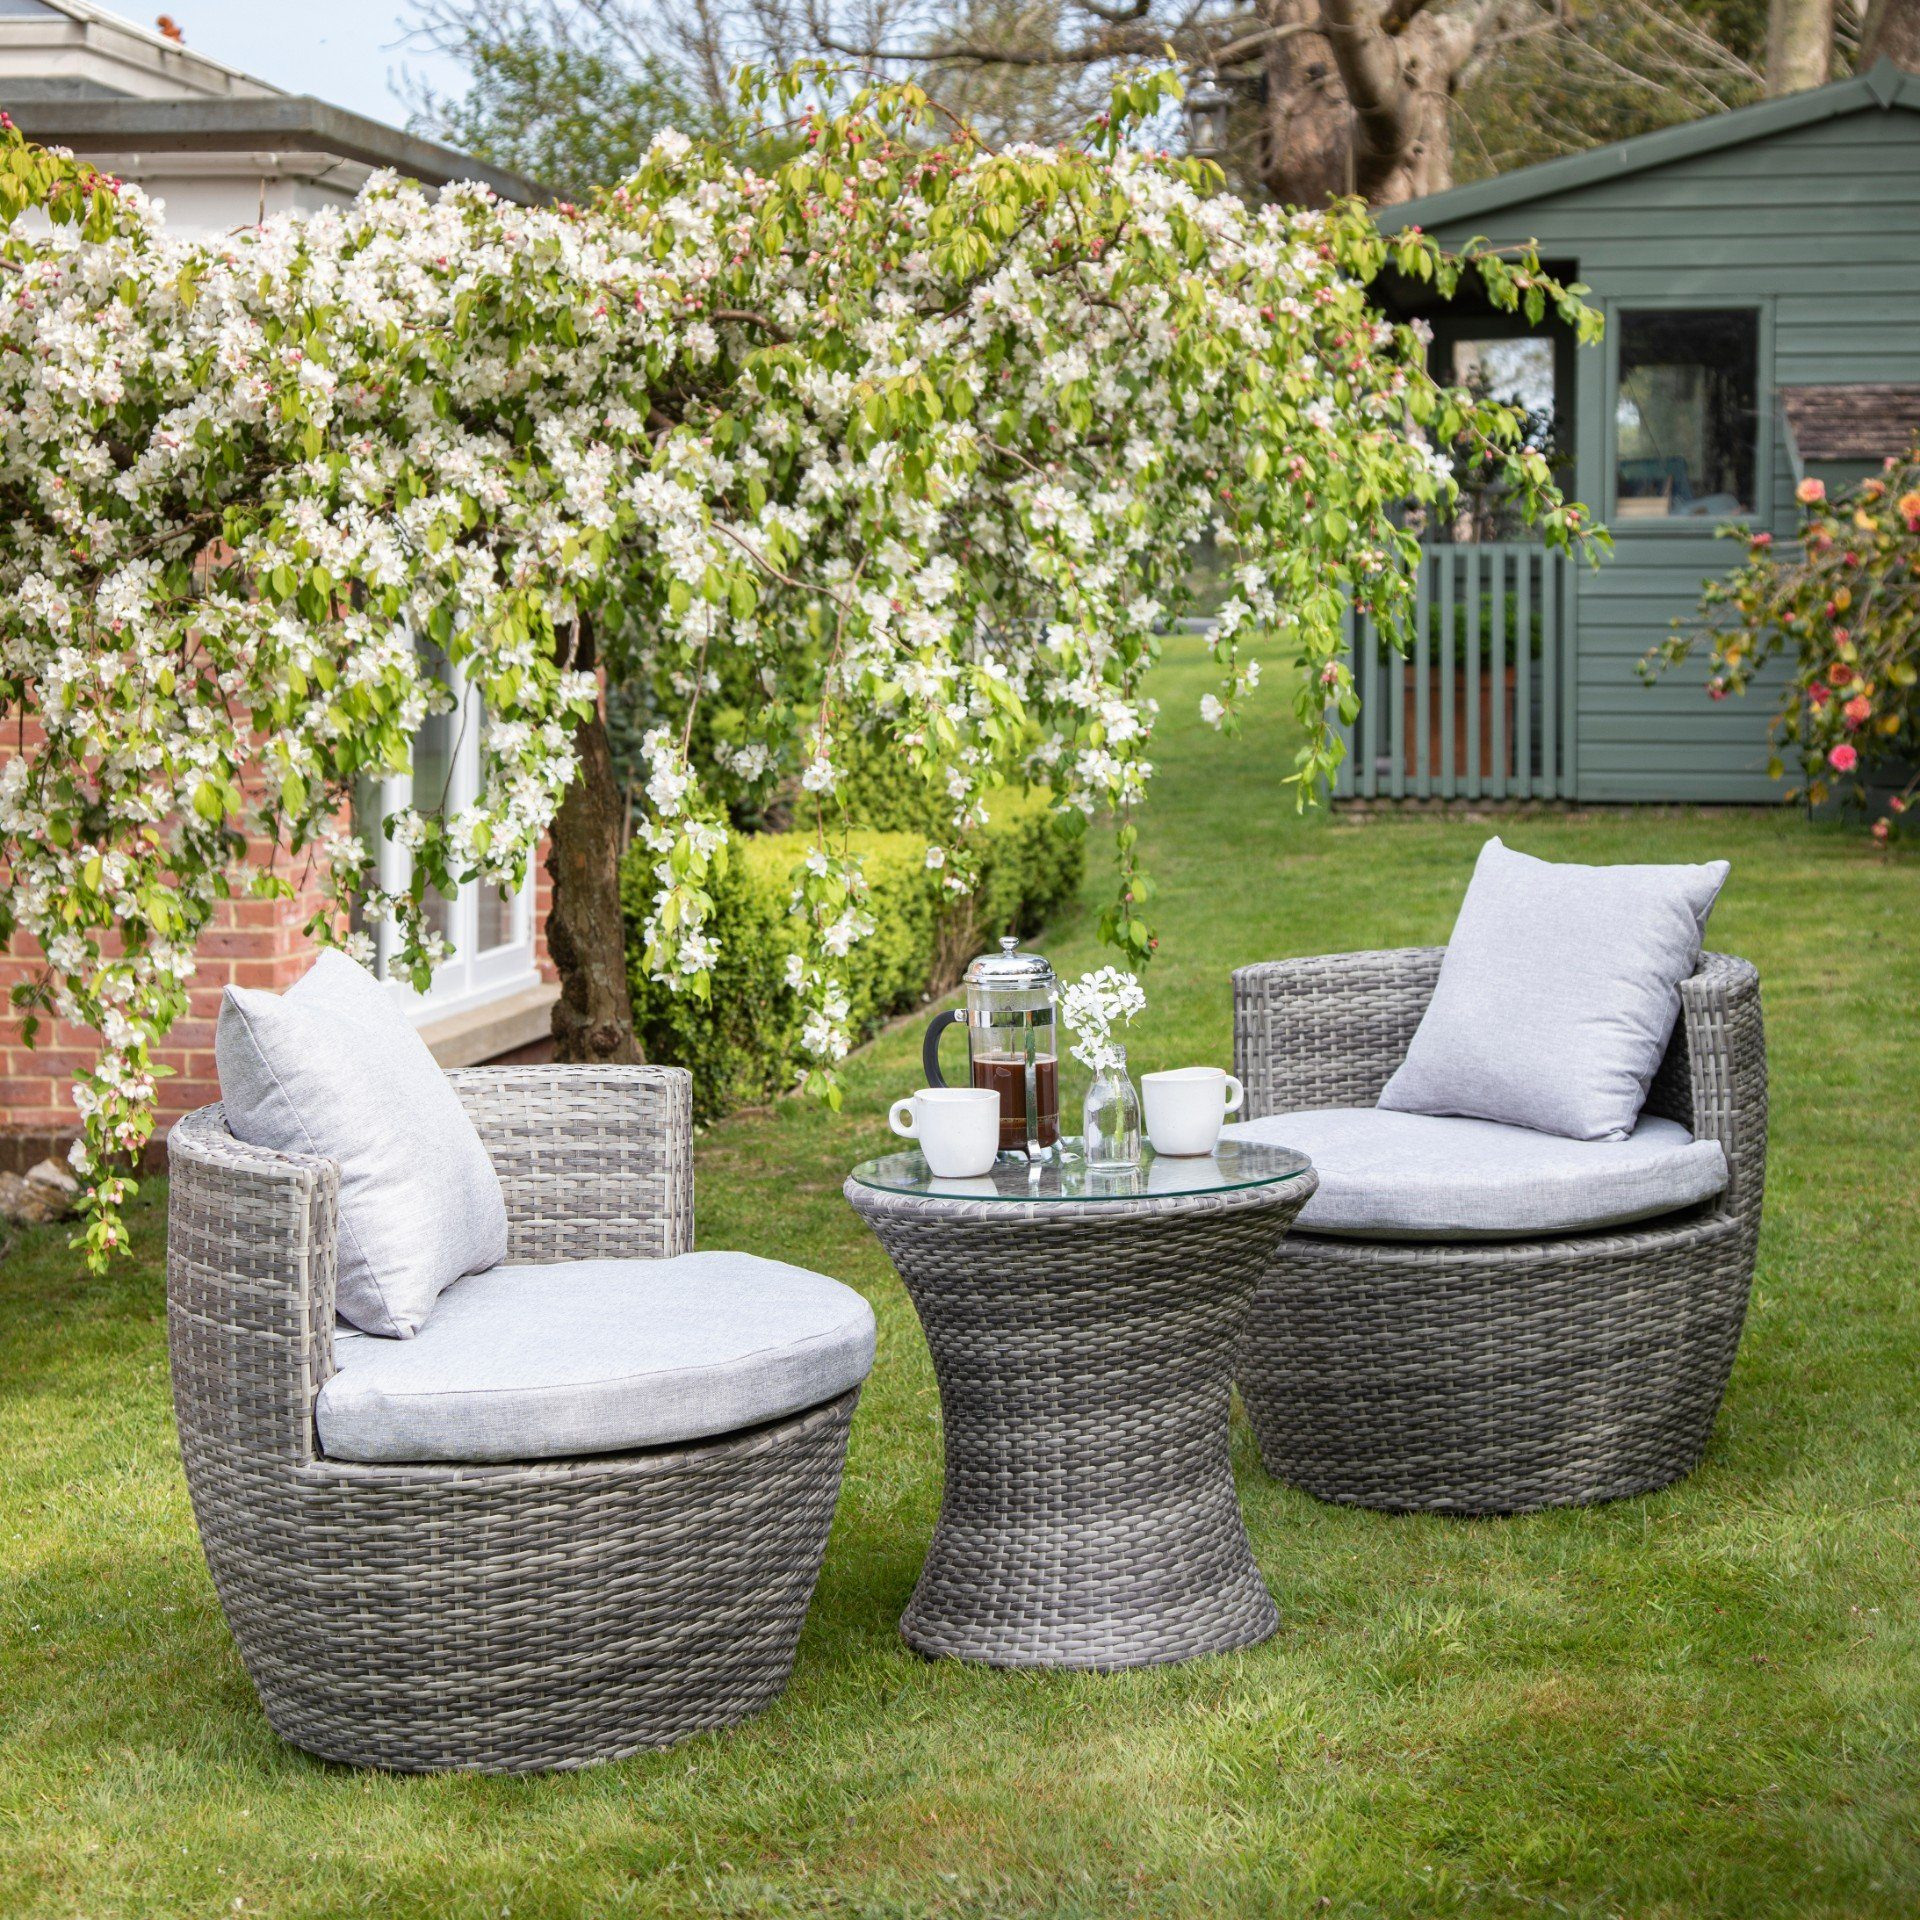 2 Seater Rattan Egg Chair Bistro Set - Grey - Laura James